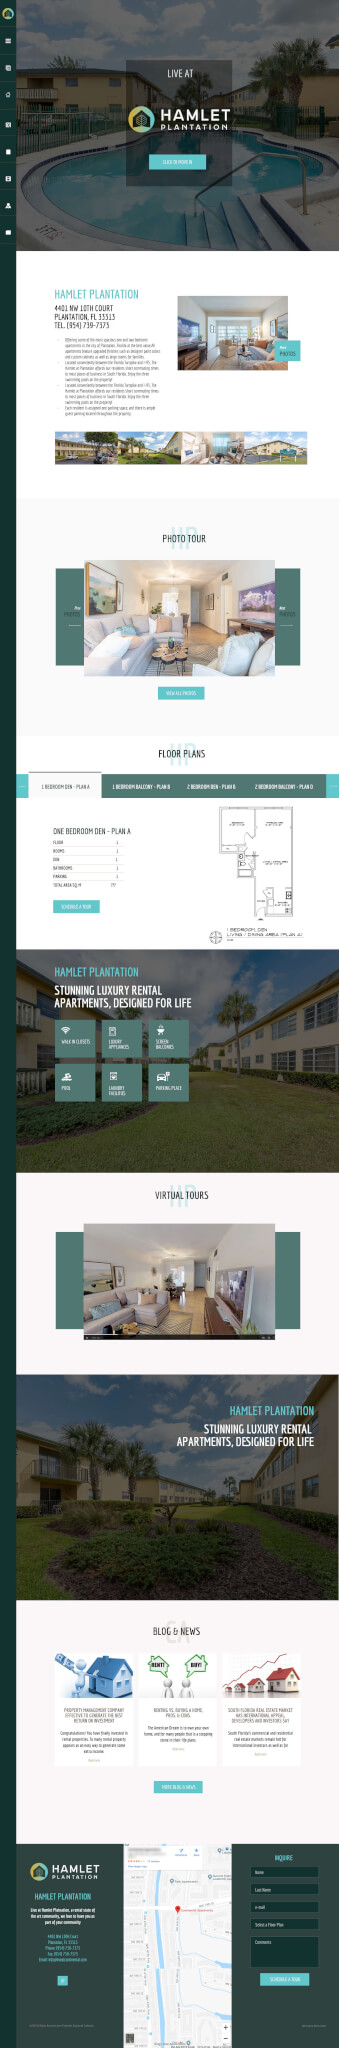 WPML WordPress Real Estate Web Sites